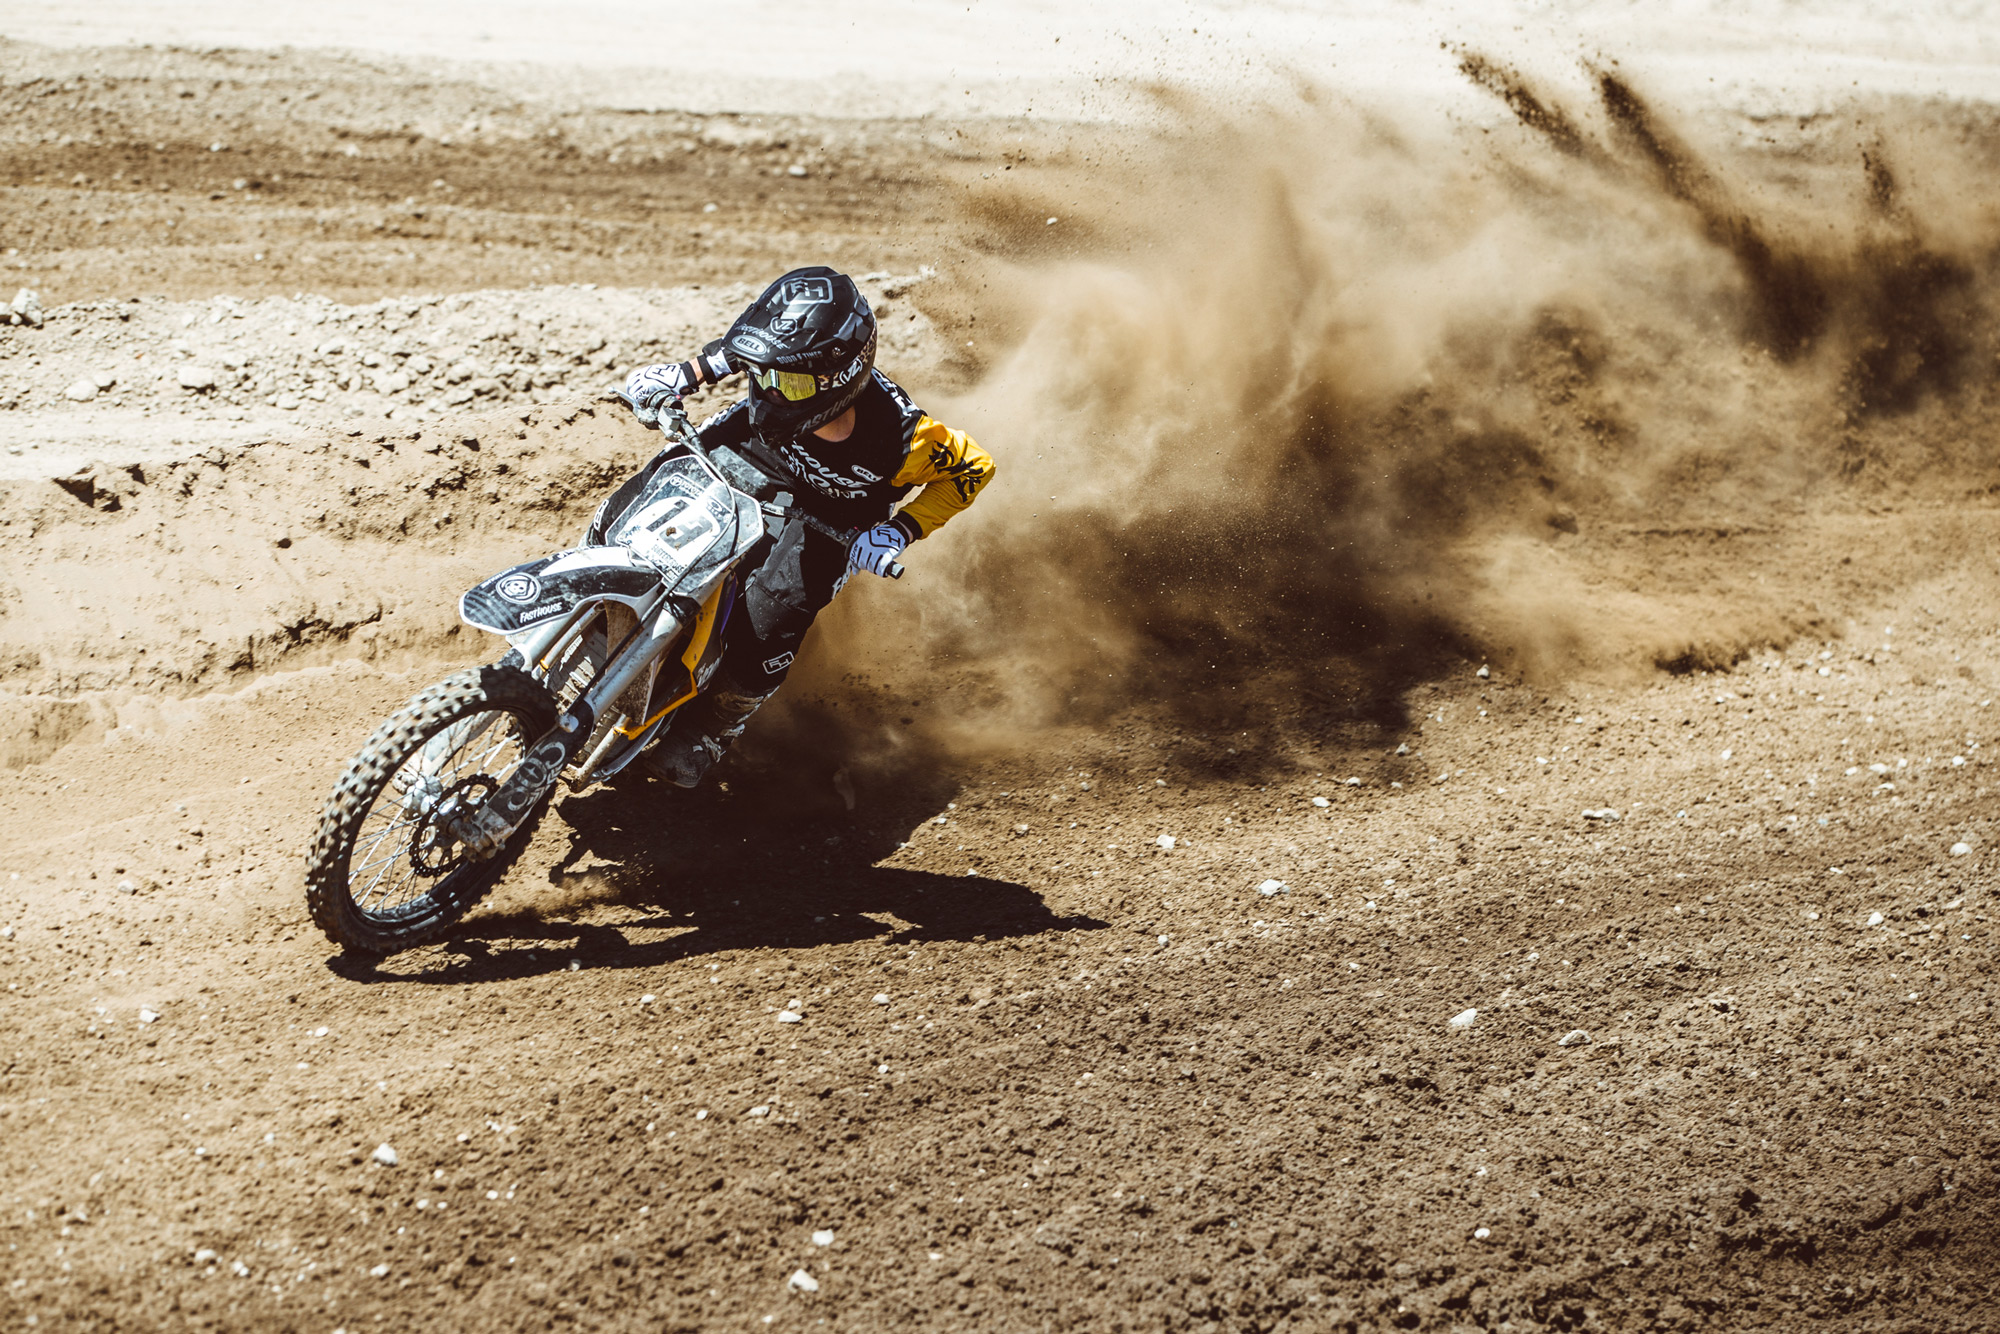 ...and some time at the track for Surfercross.